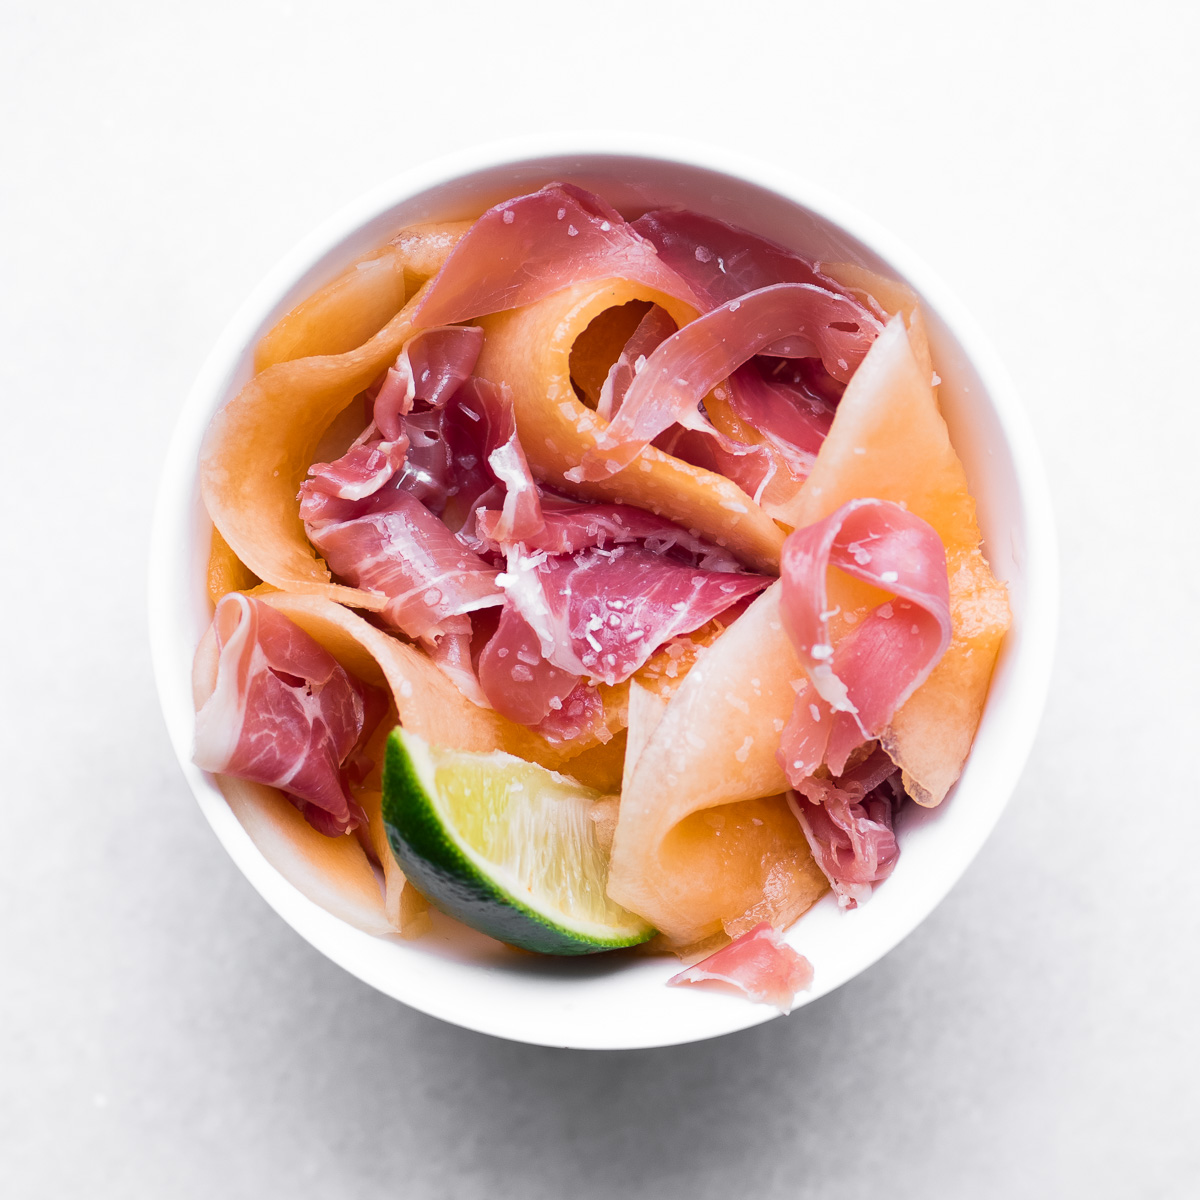 Honey Kiss Melon and prosciutto salad